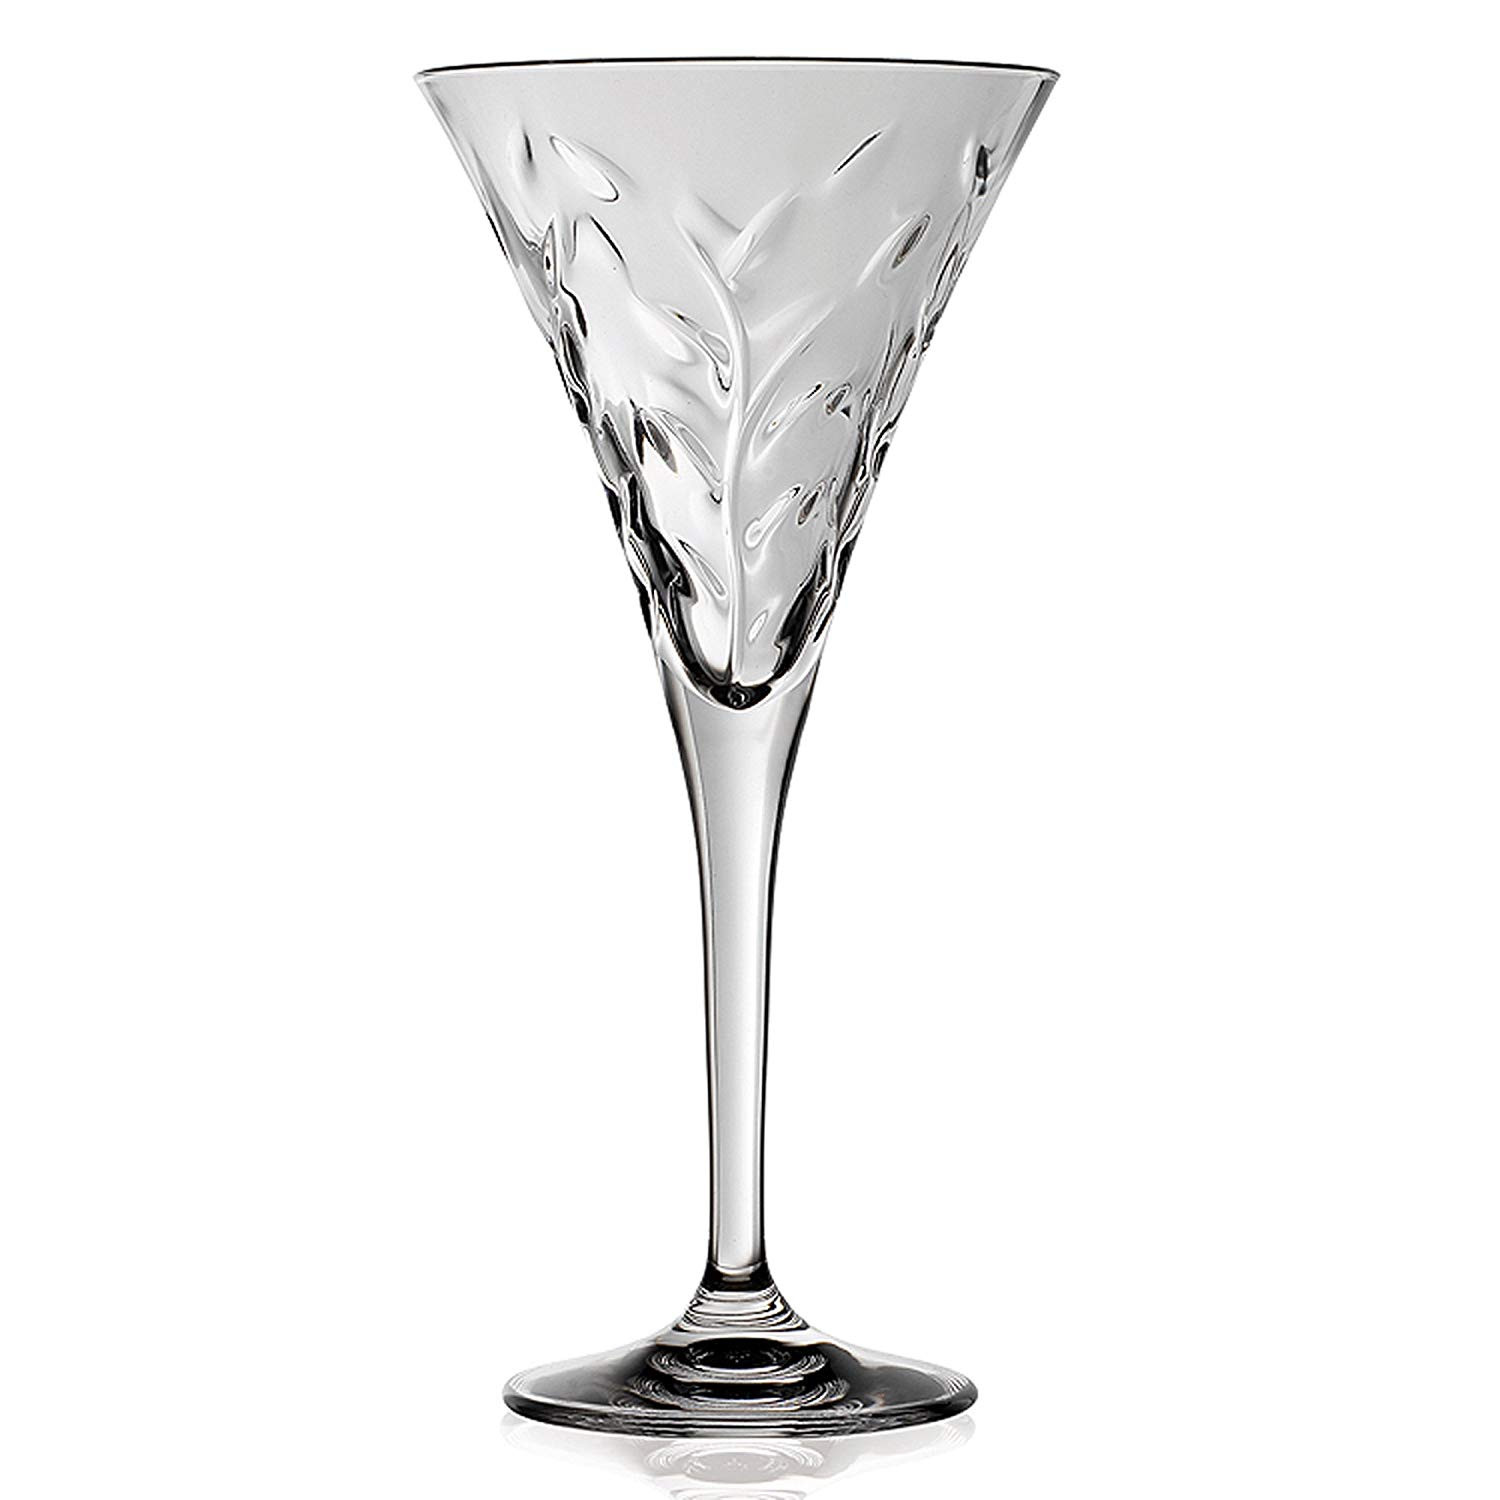 Rcr Crystal Vase Price Of Amazon Com Lorenzo Rcr Crystal Laurus Collection Wine Glass Set within Amazon Com Lorenzo Rcr Crystal Laurus Collection Wine Glass Set Of 6 Drinkware Sets Wine Glasses